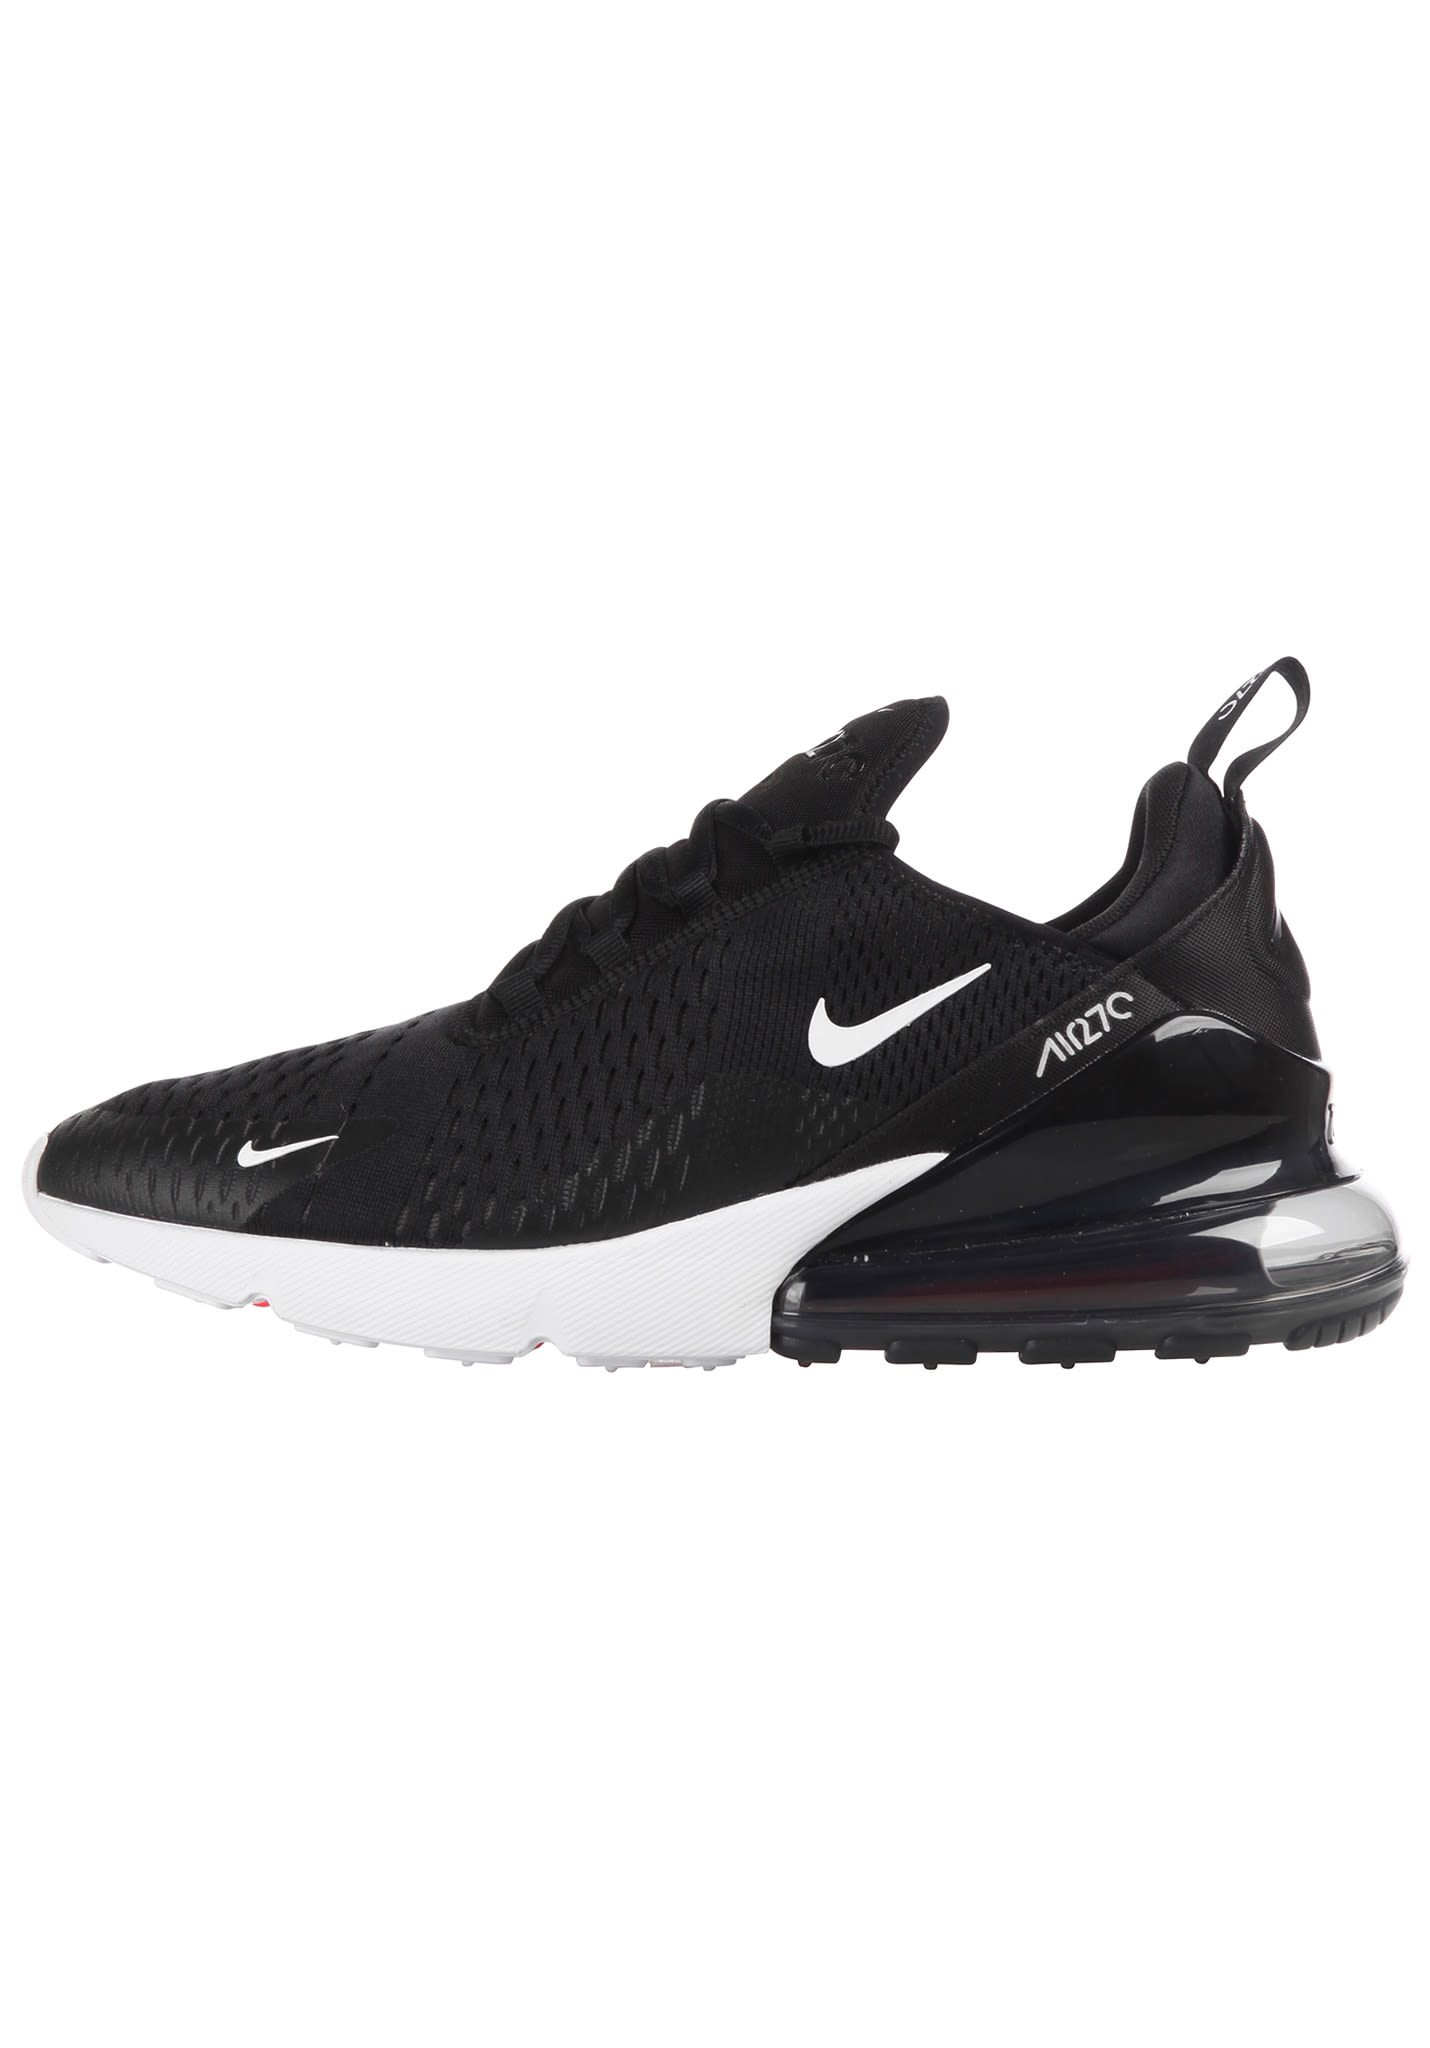 buy popular 2dde0 78e4b NIKE SPORTSWEAR Air Max 270 - Sneaker für Herren - Schwarz - Planet Sports